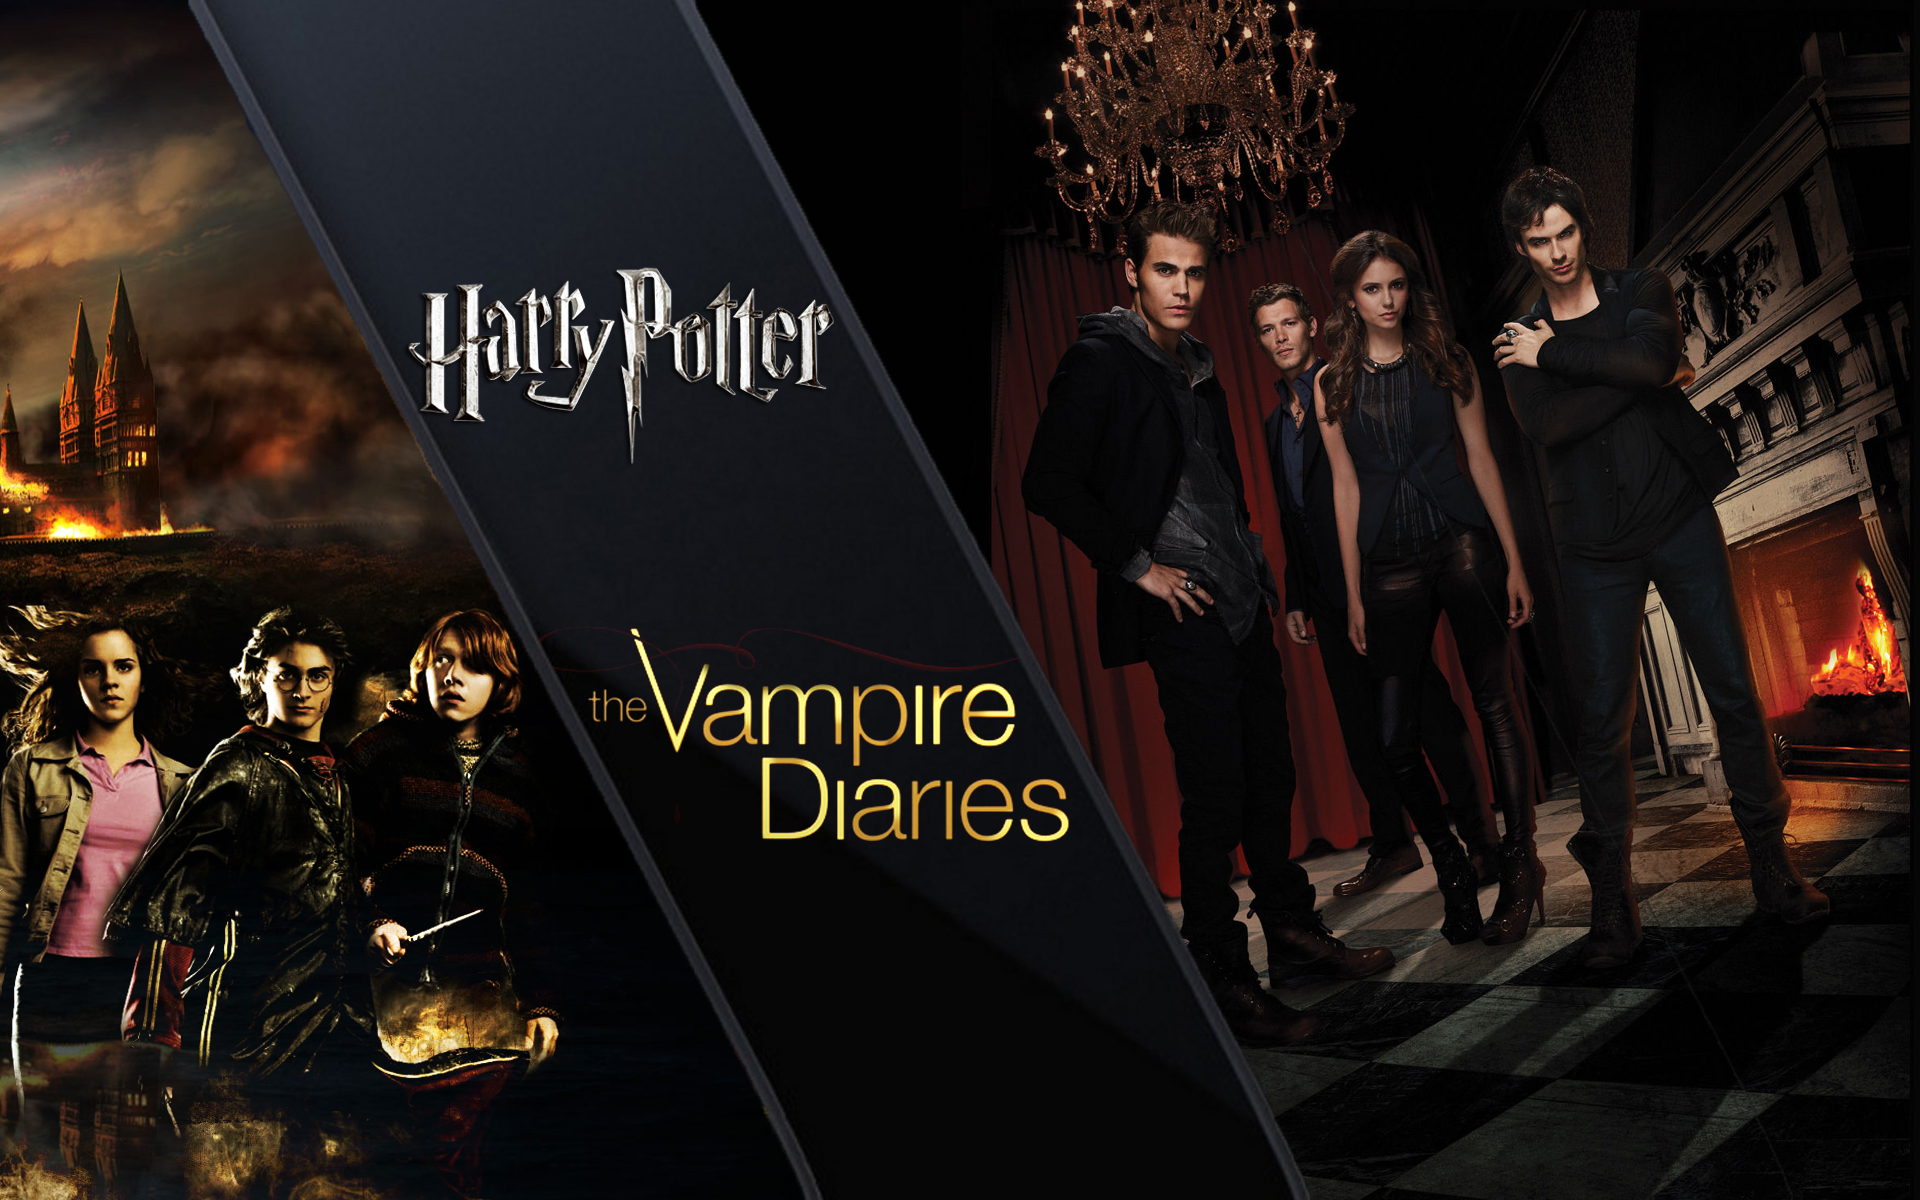 Must see Wallpaper Harry Potter Fanart - HP-and-TVD-Wallpaper-harry-potter-and-the-vampire-diaries-30738365-1920-1200  Photograph_58212.jpg